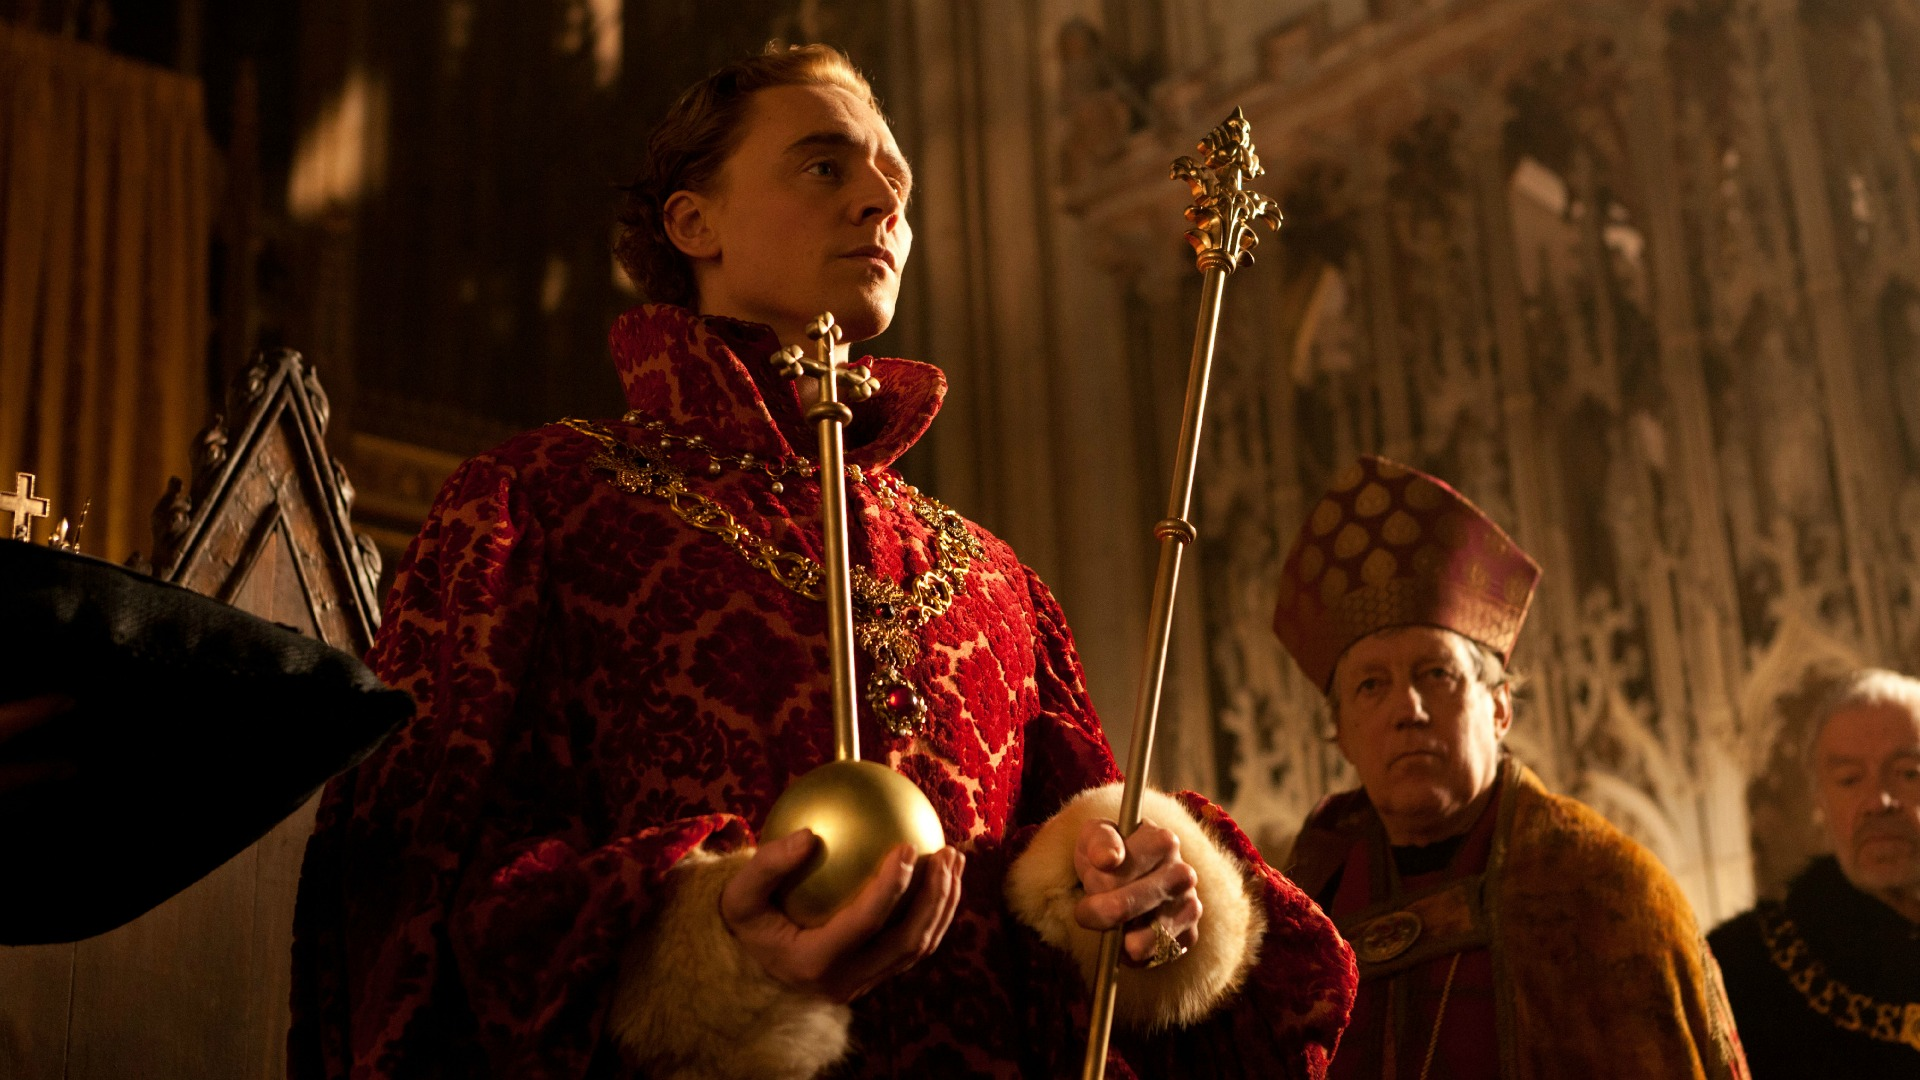 henry iv part ii No fear shakespeare by sparknotes features the complete edition of henry iv part 2 side-by-side with an accessible, plain english translation.